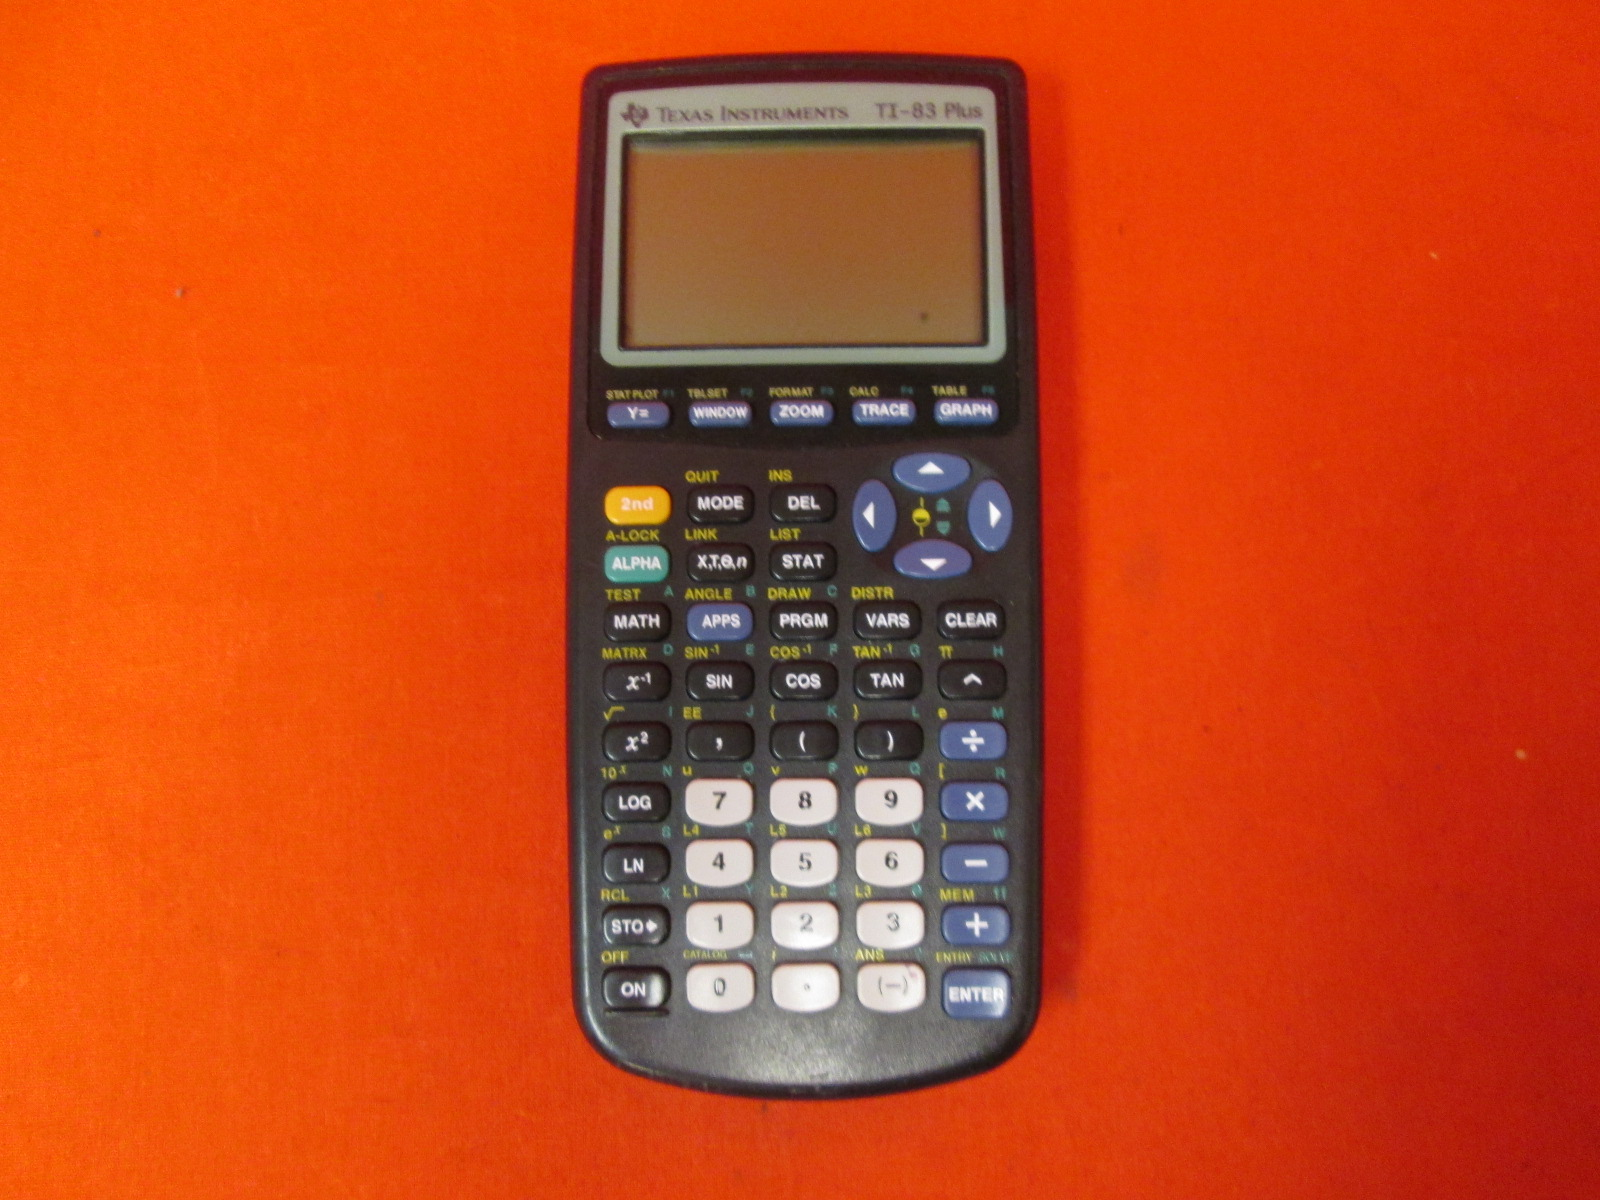 Texas Instruments TI-83 Plus Programmable Graphing Calculator